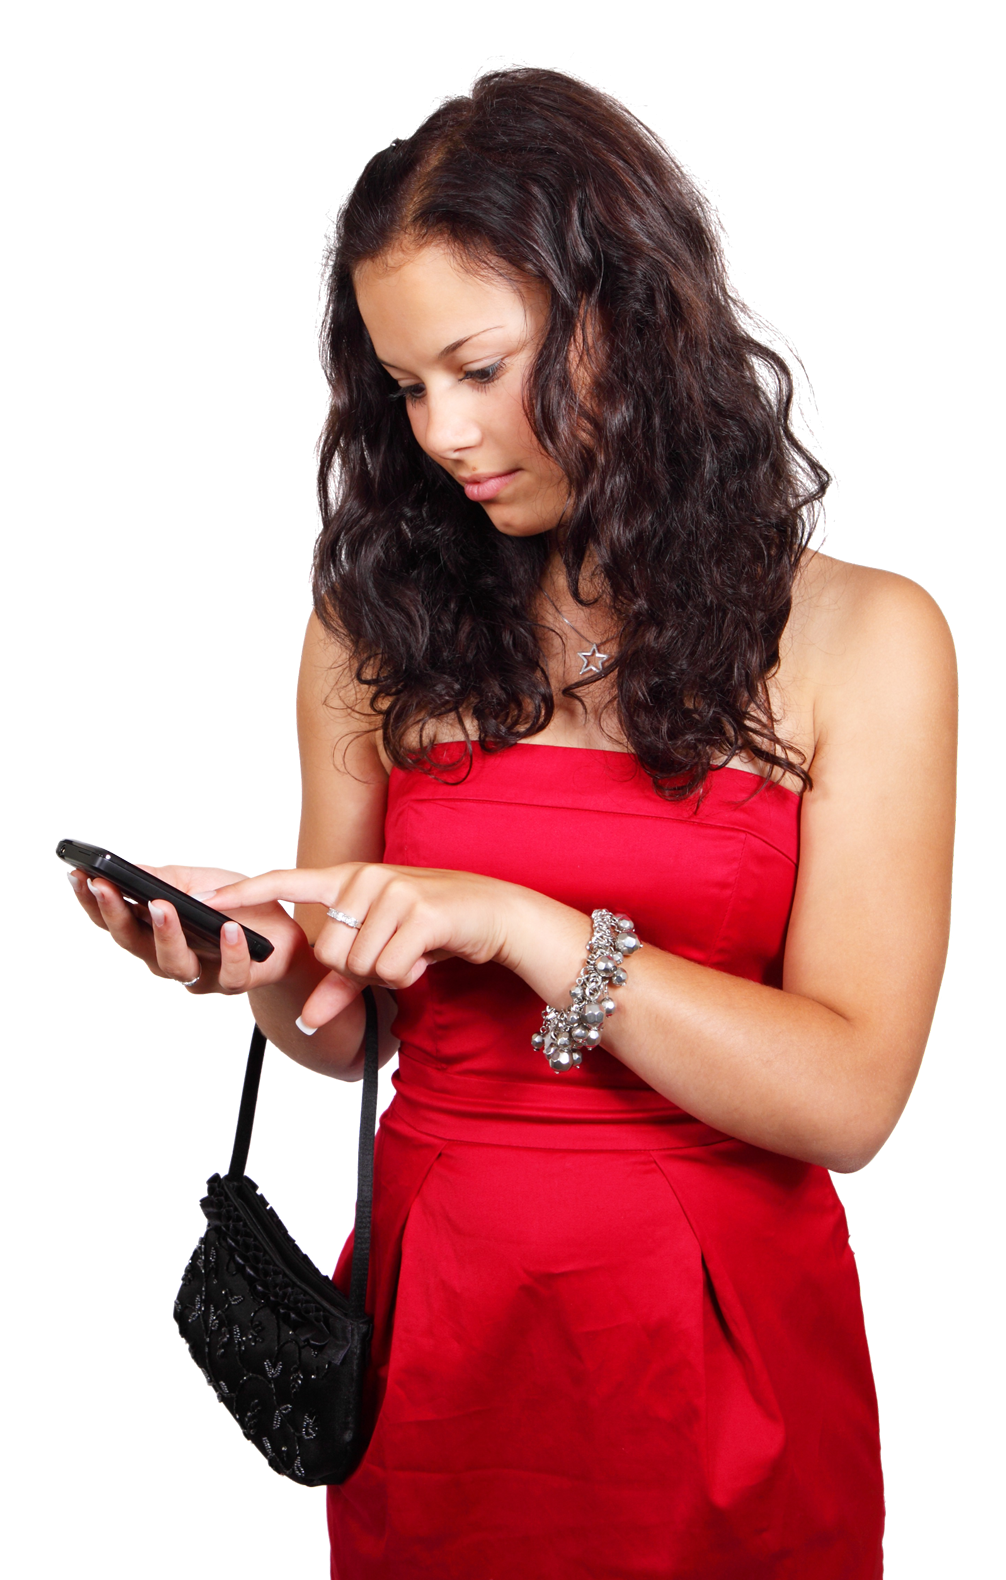 Girl on phone png. With mobile image